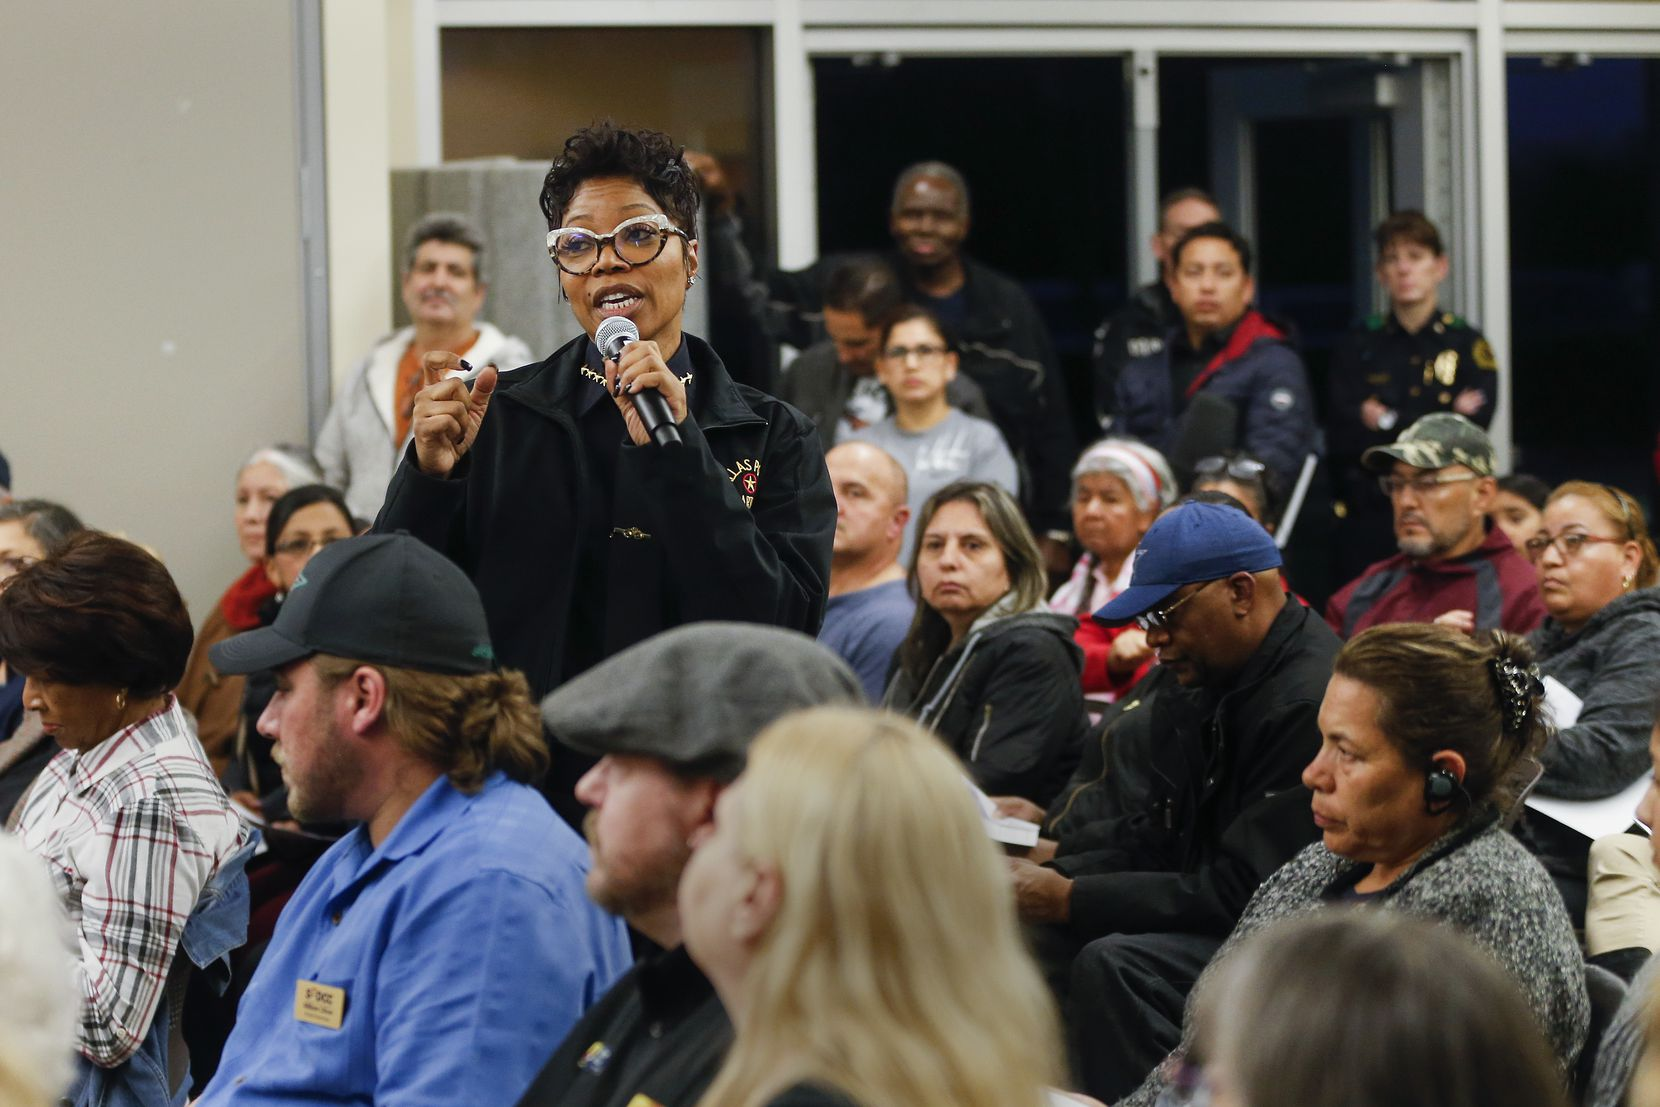 Dallas Police Chief U. Renee Hall spoke during a listening session hosted by the Police Department at Eastfield College's Pleasant Grove campus on Jan. 28, 2020.